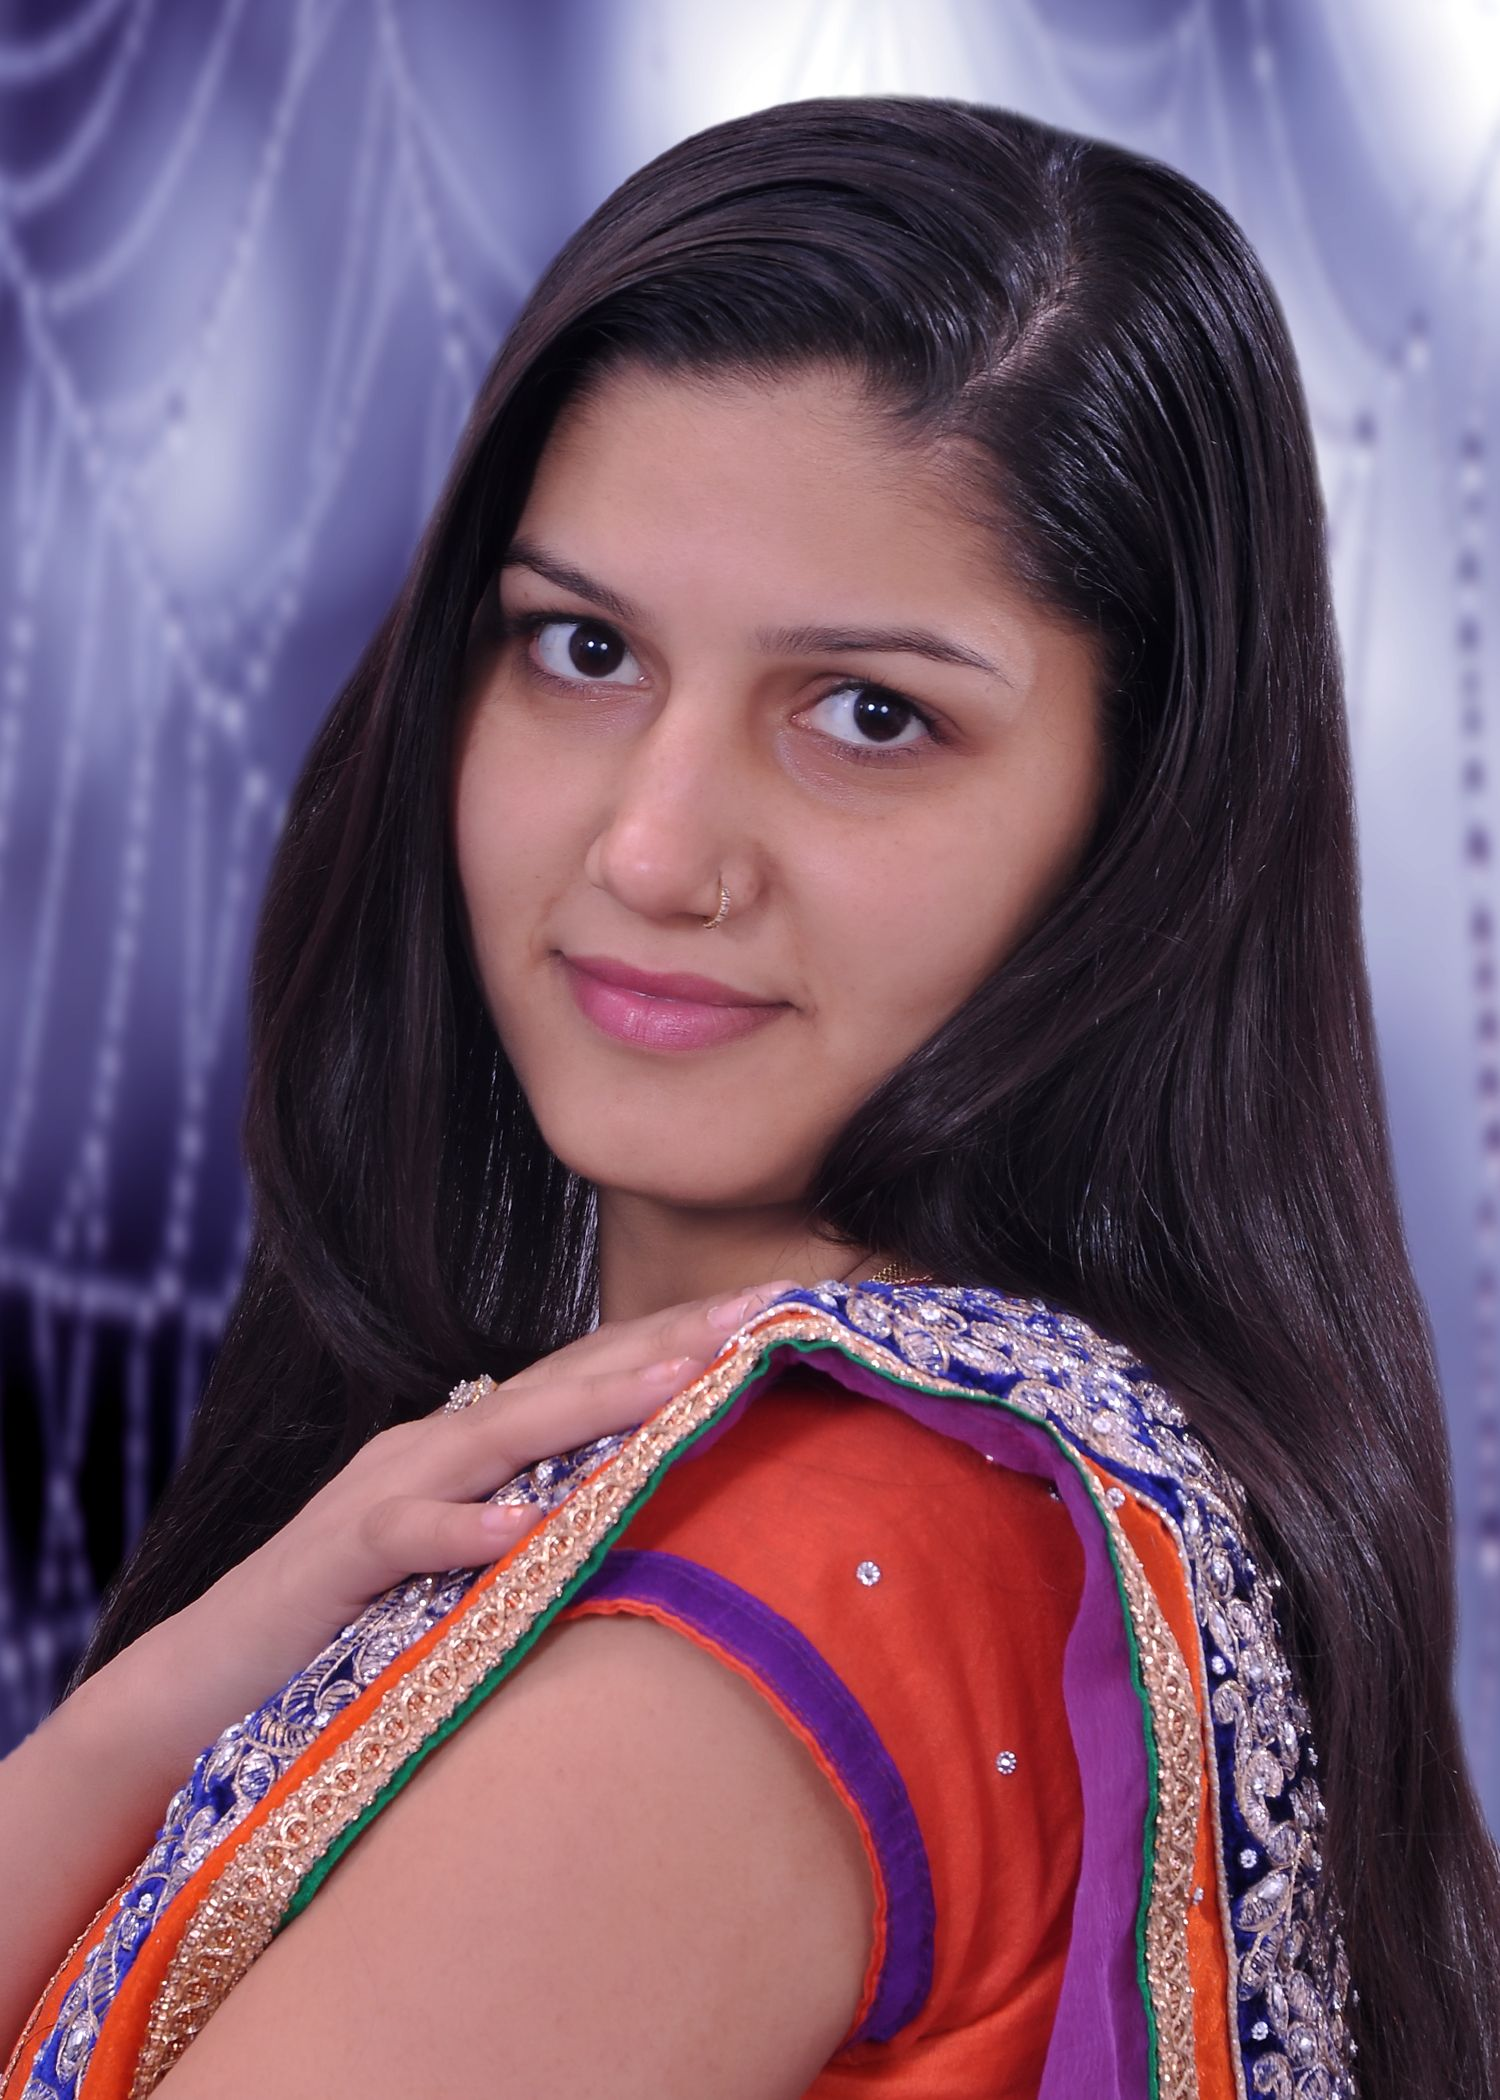 Sapna Chaudhary The Famous Singer And Dancer Is Popular In -3627